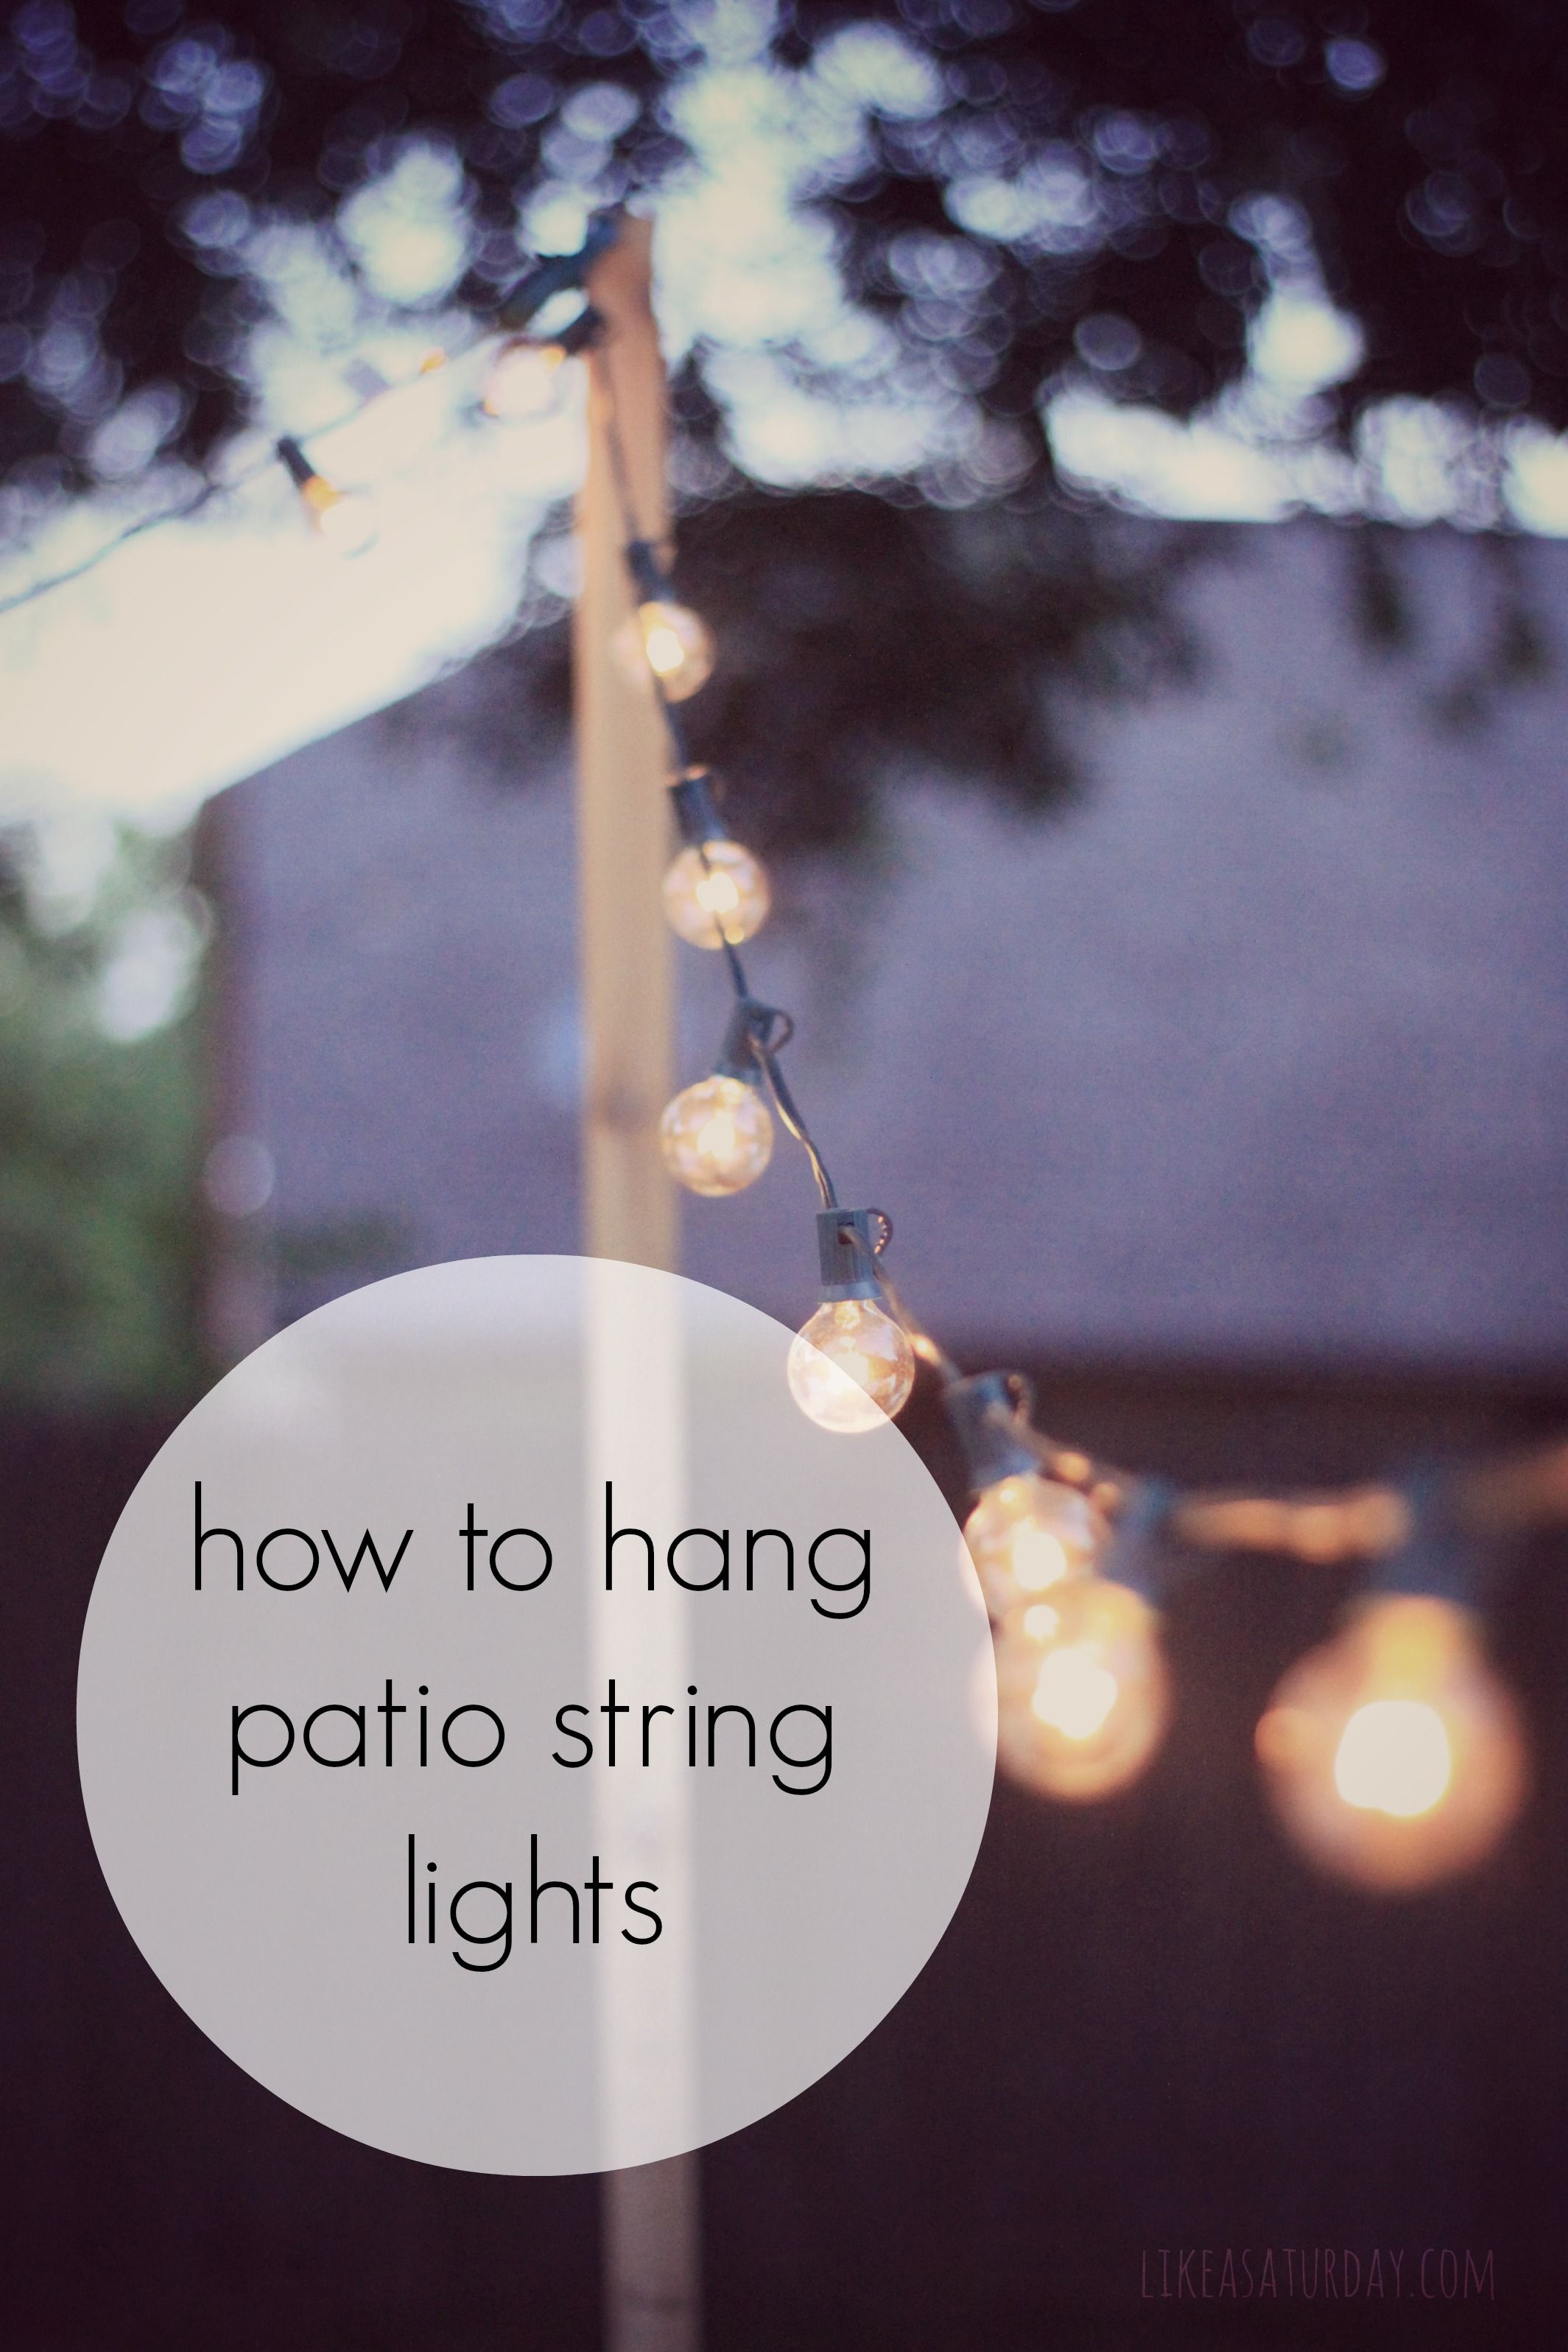 How To Hang Patio String Lights Backyard Ideas Garden Diy Bbq